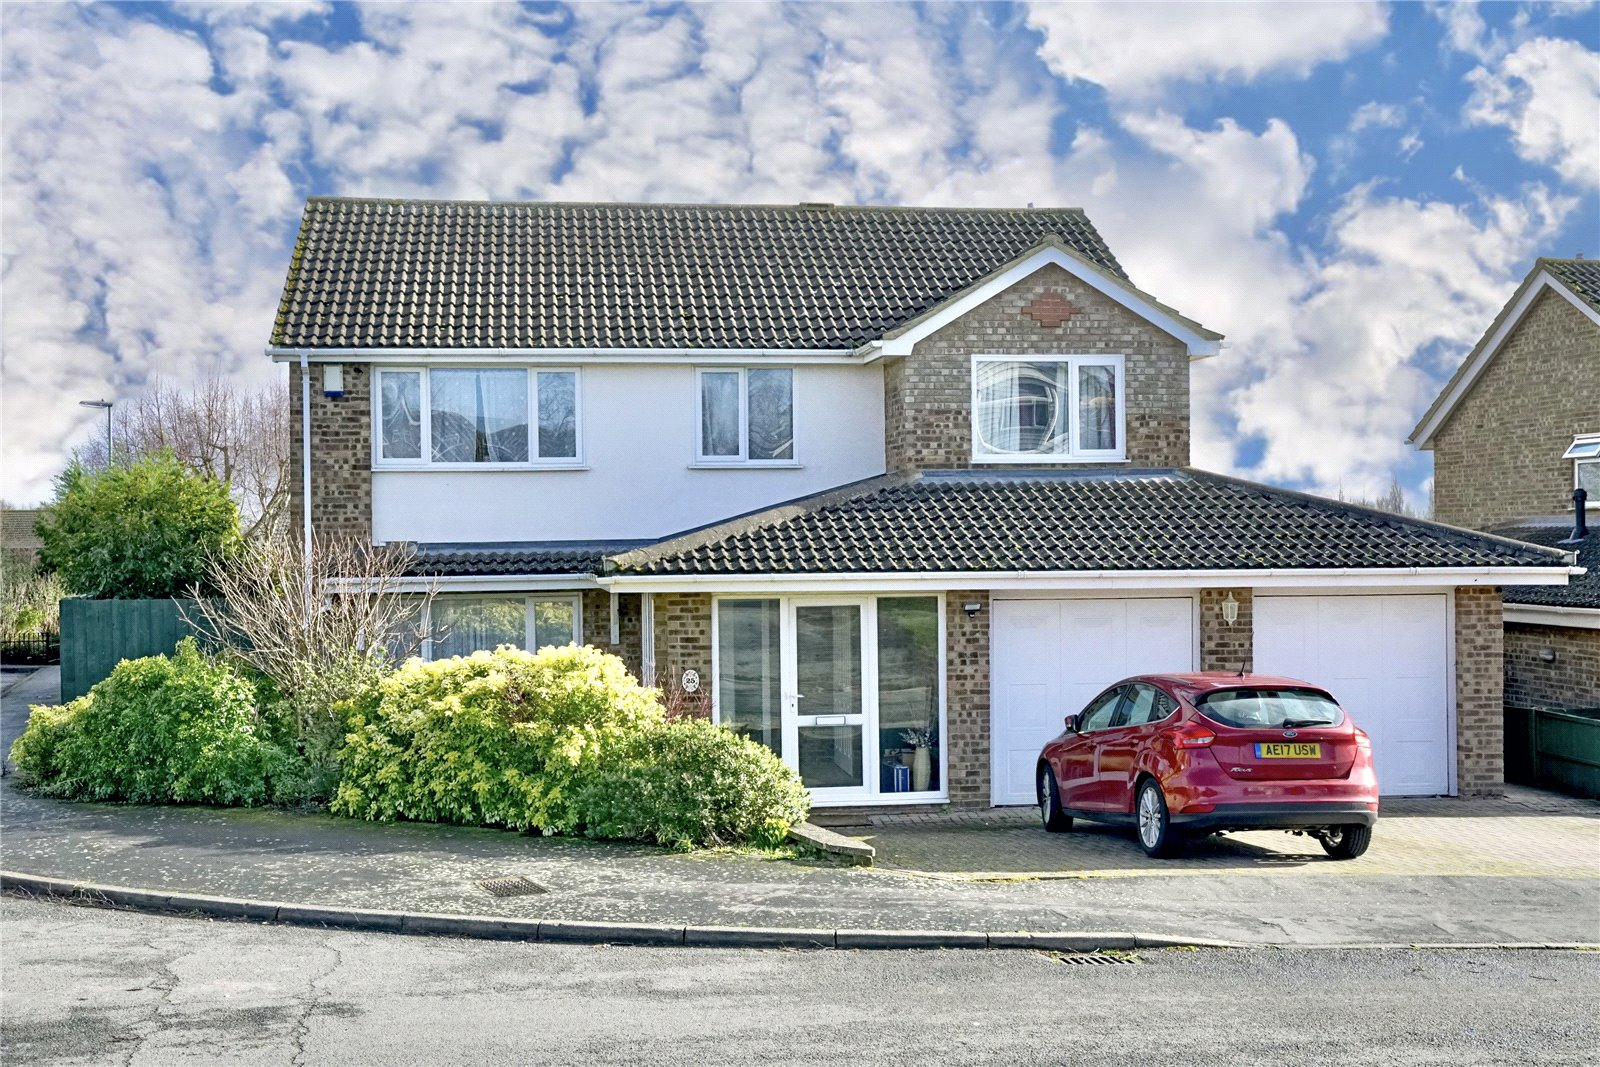 4 bed house for sale in Eaton Ford 1